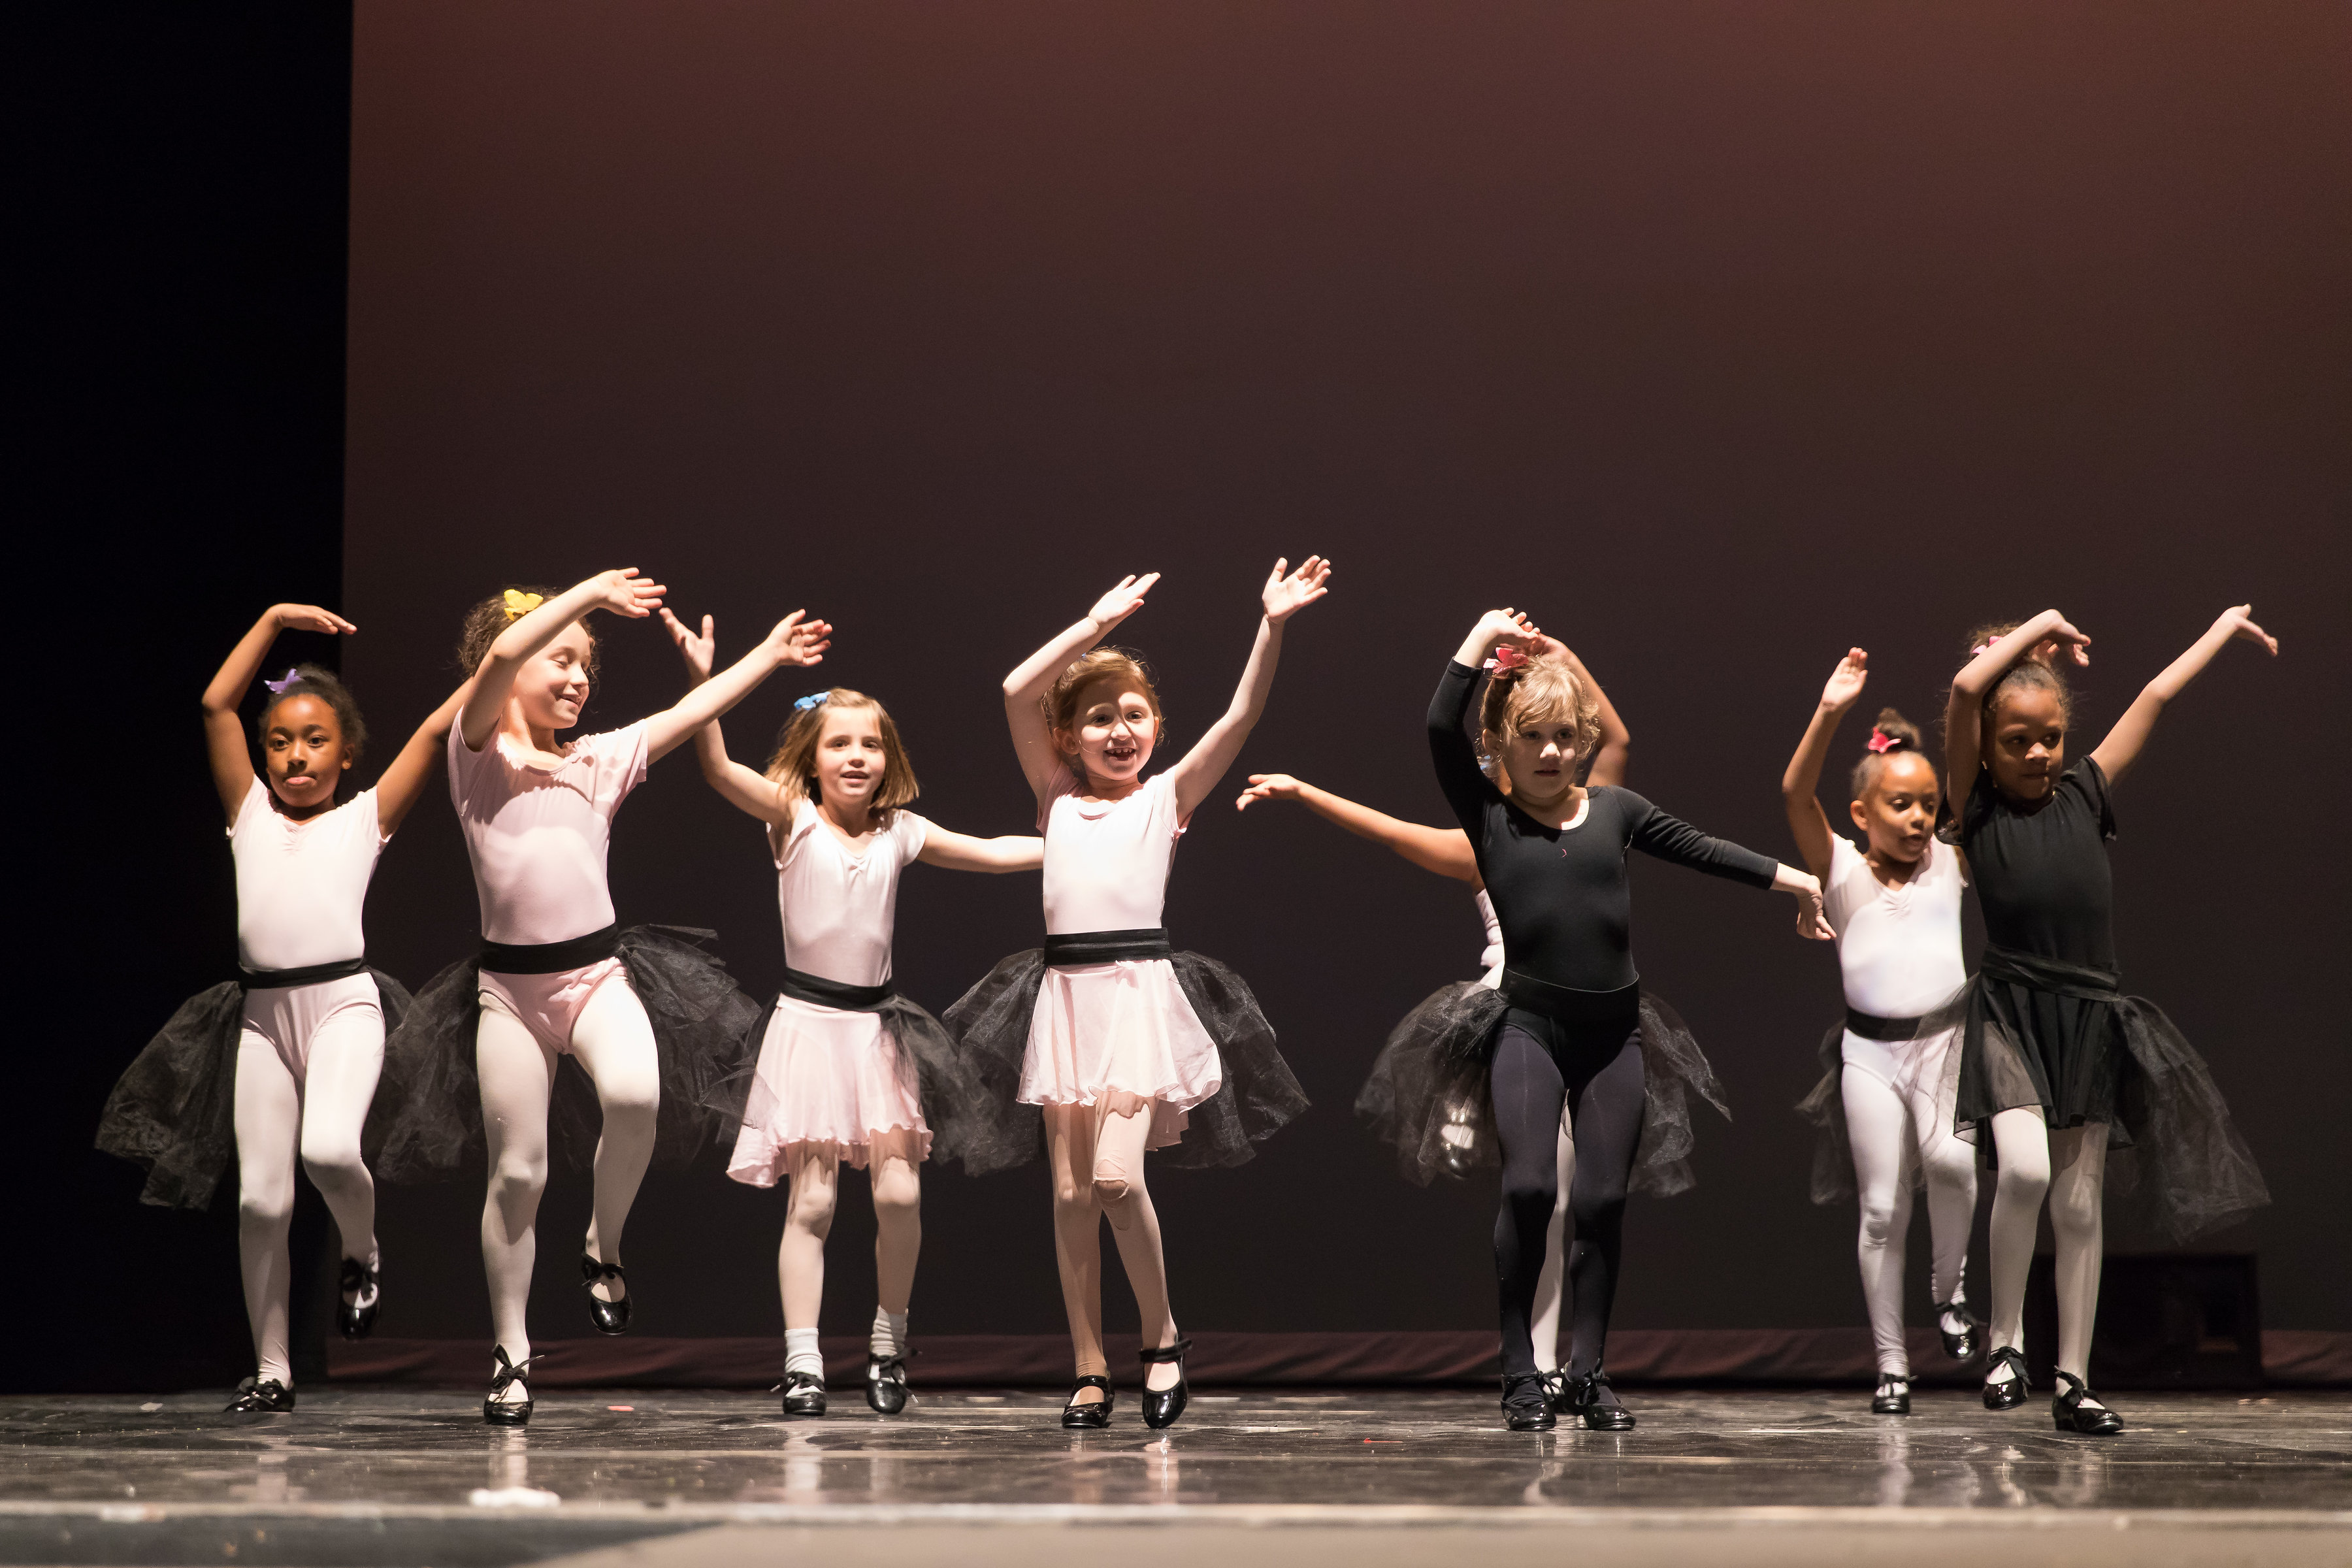 Dance Place | Dance Classes and Performances in Washington, DC